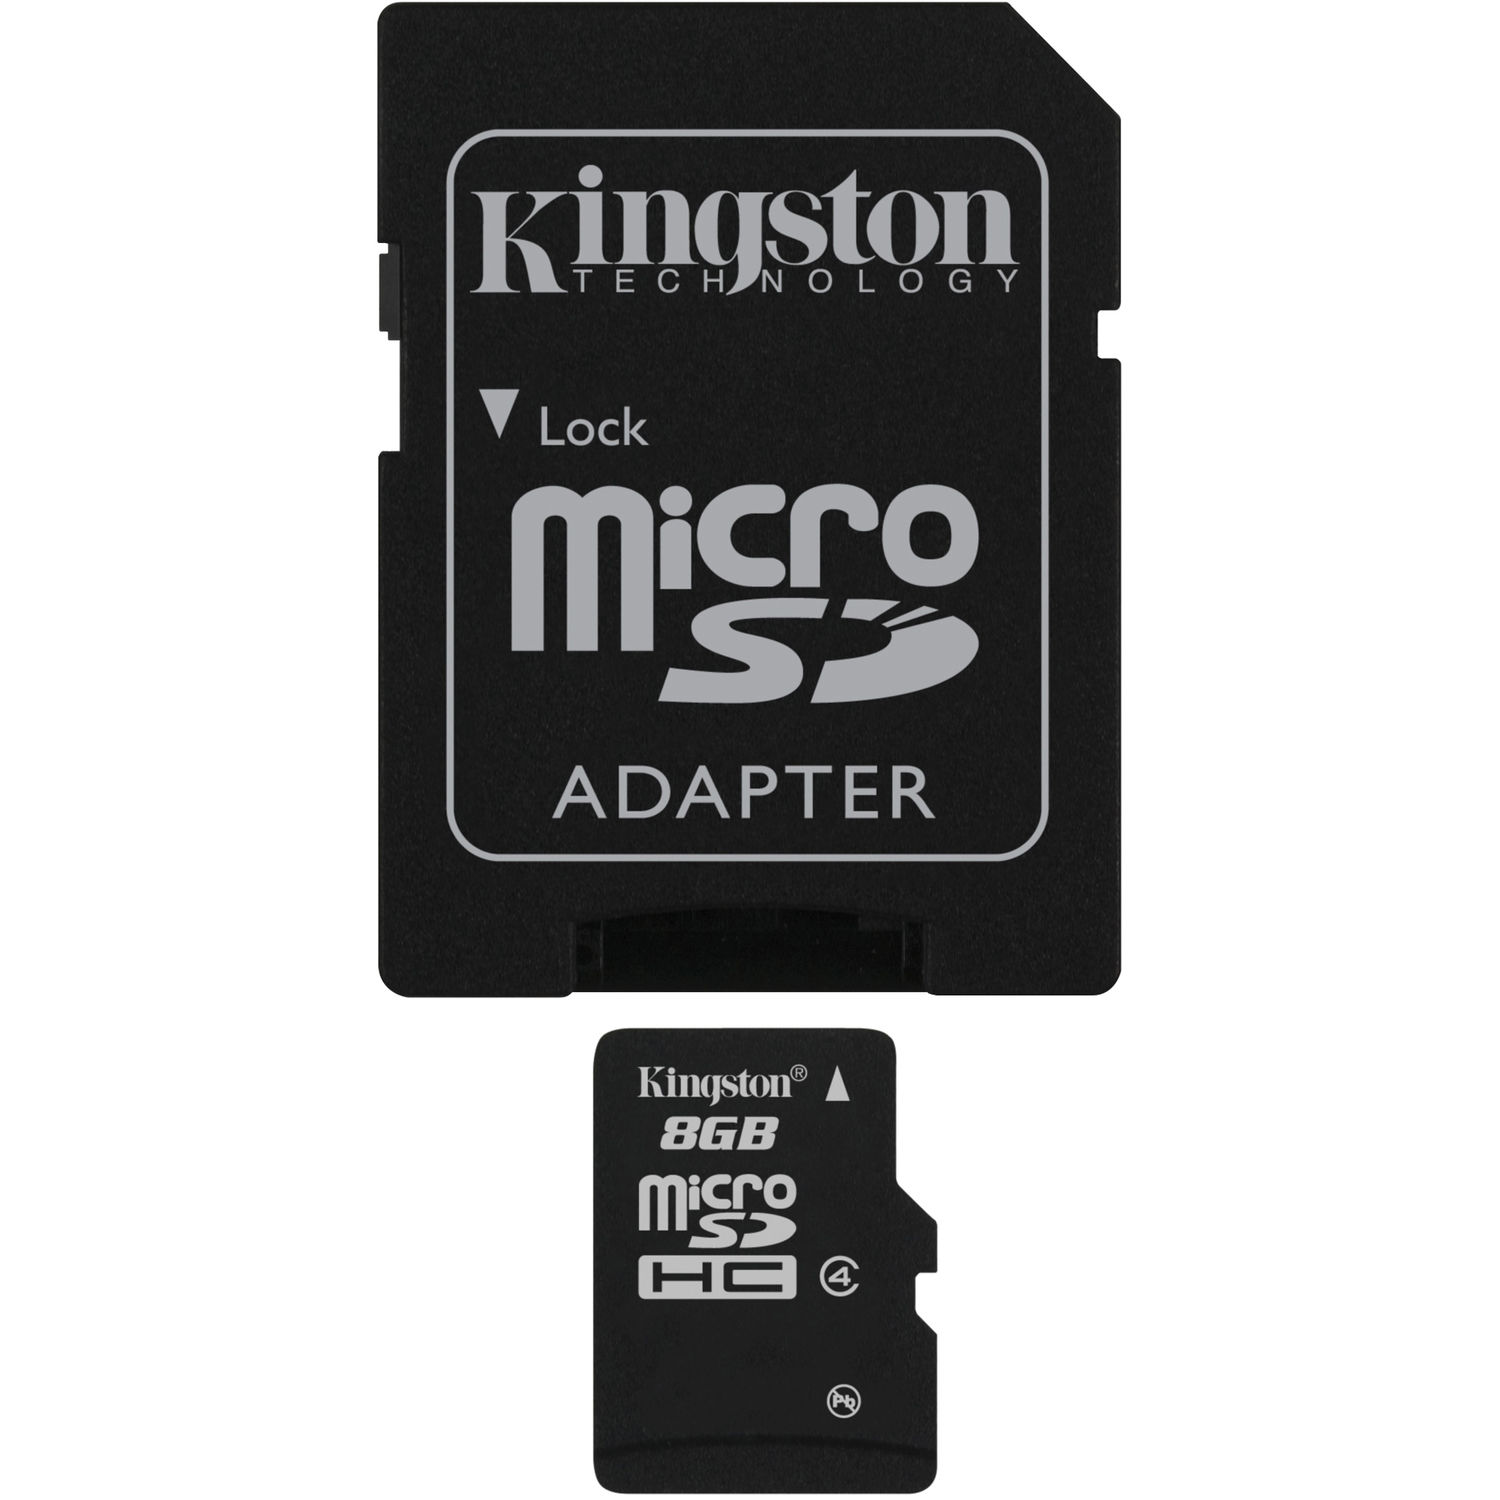 Professional Kingston 16GB MicroSDHC Card for HTC SV Smartphonewith custom formatting and Standard SD Adapter. Class 4 .